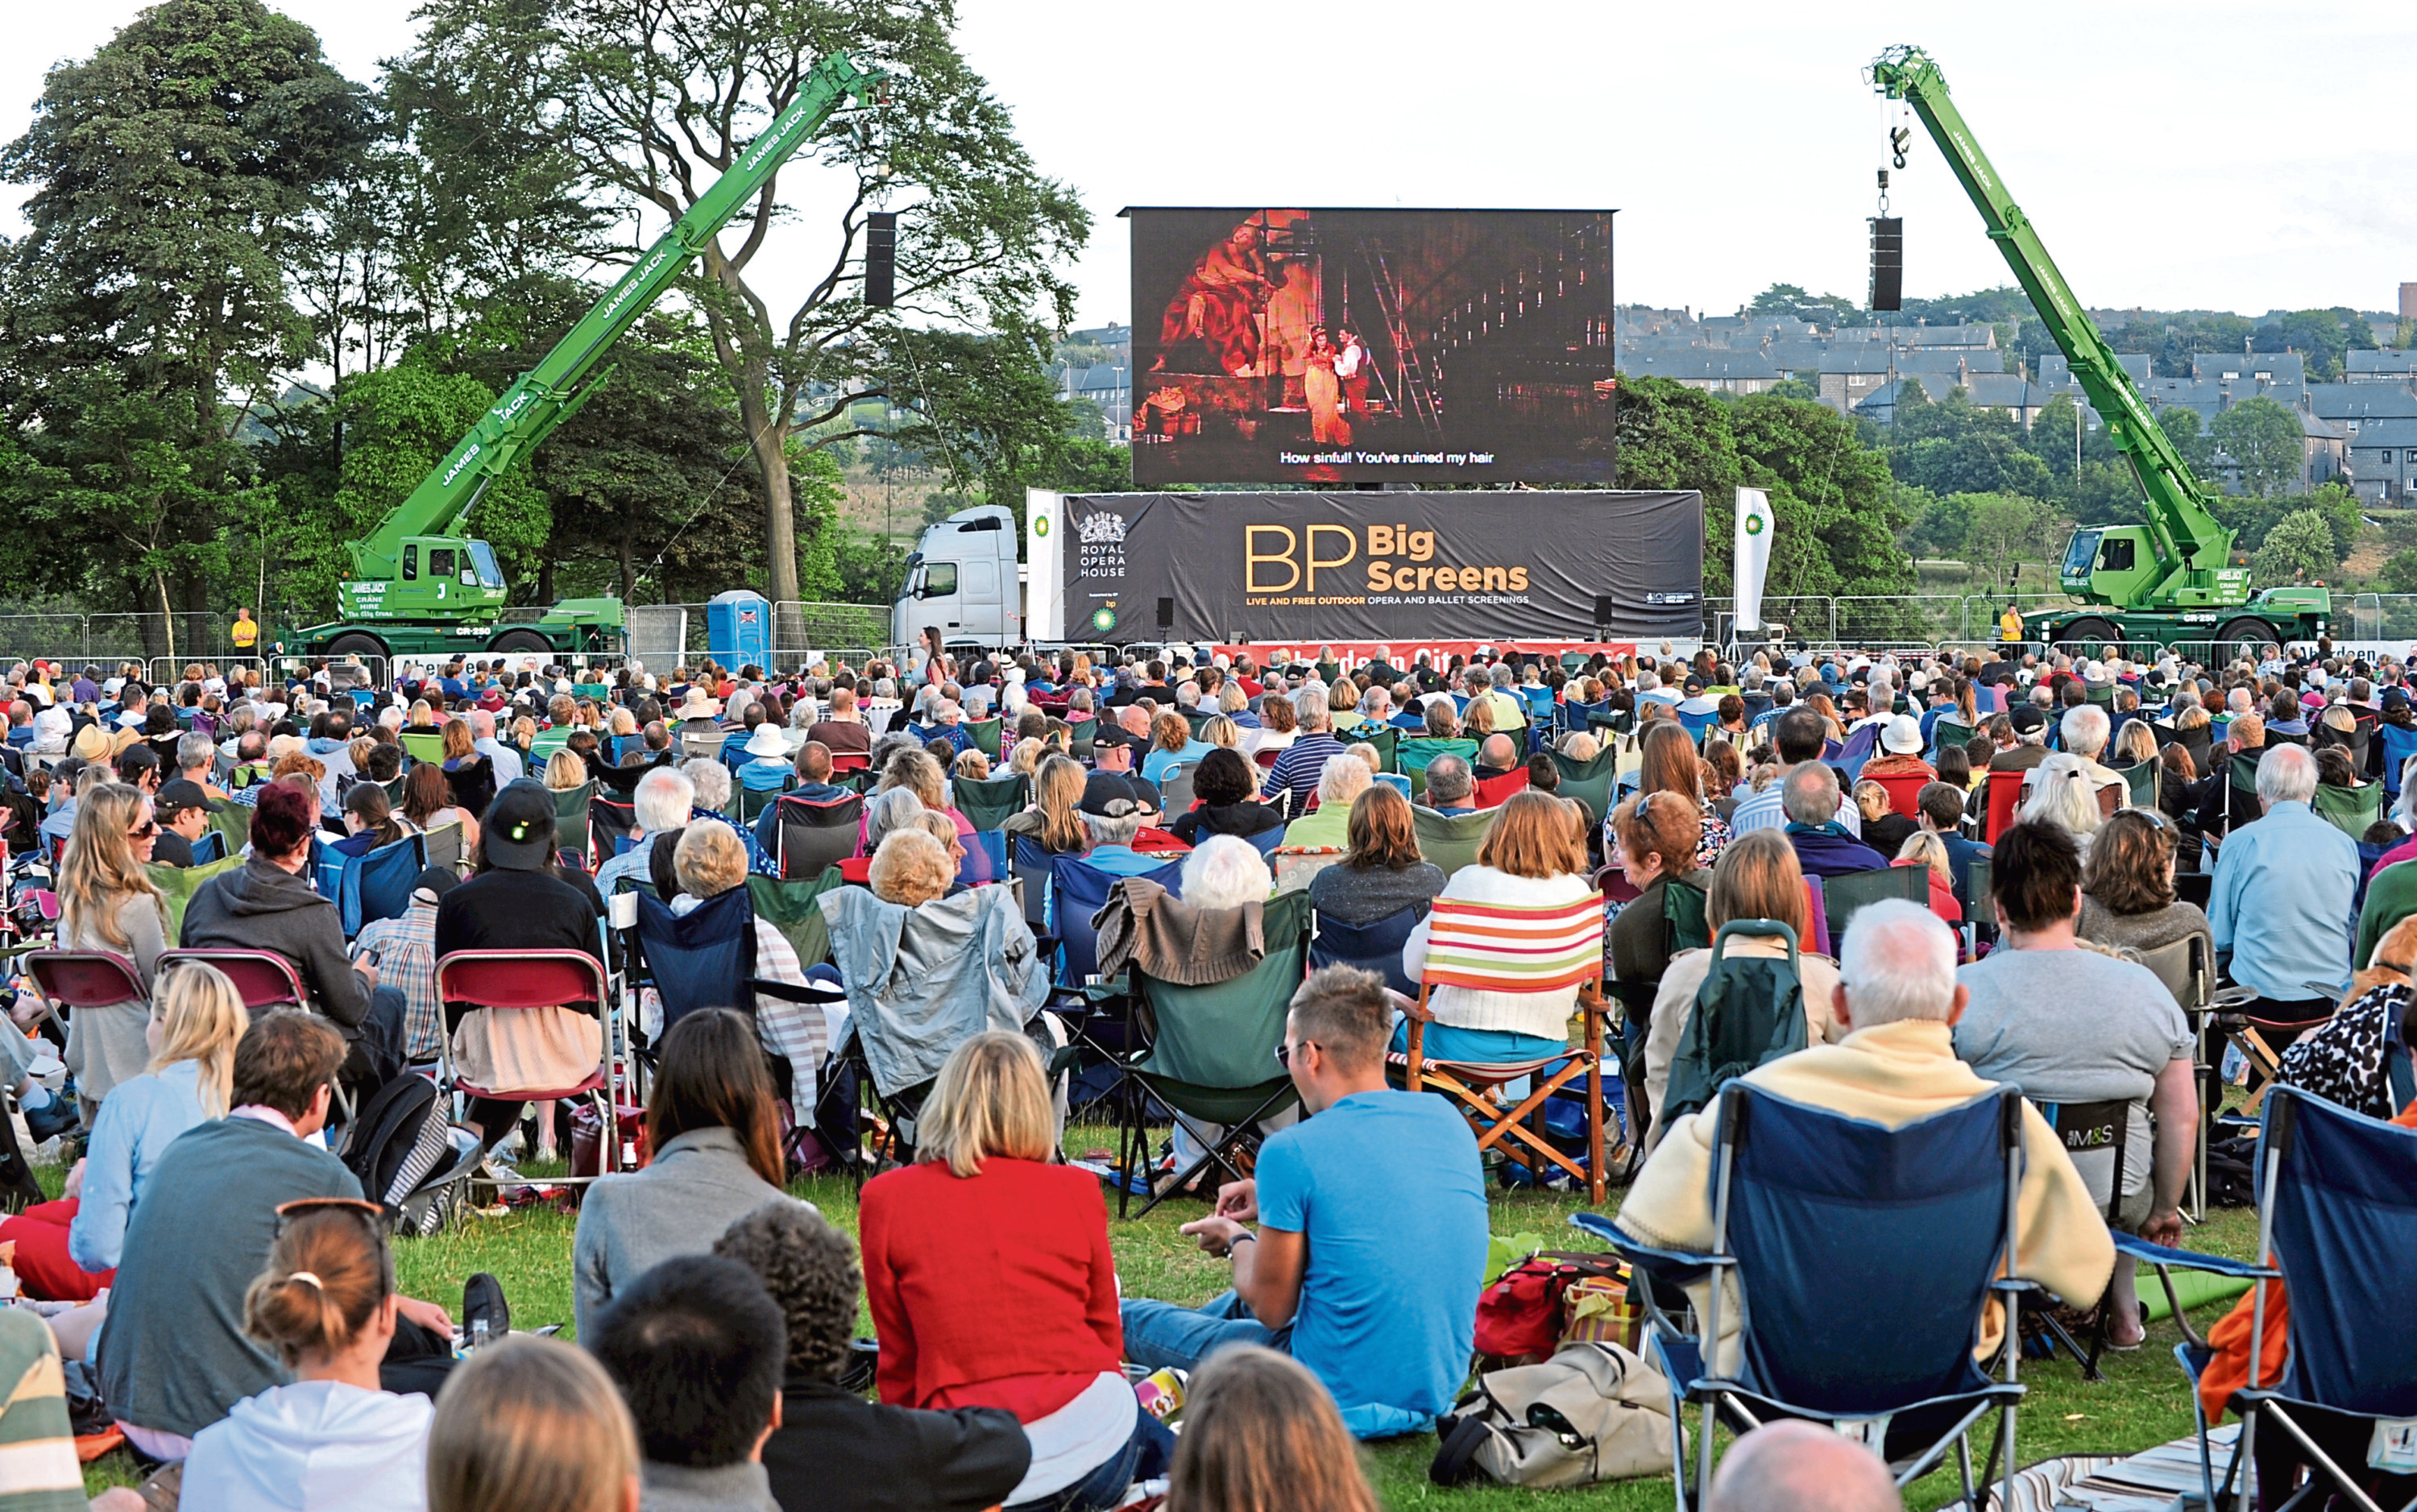 People watching the opera Tosca on the BP Big Screen at Duthie Park last year.